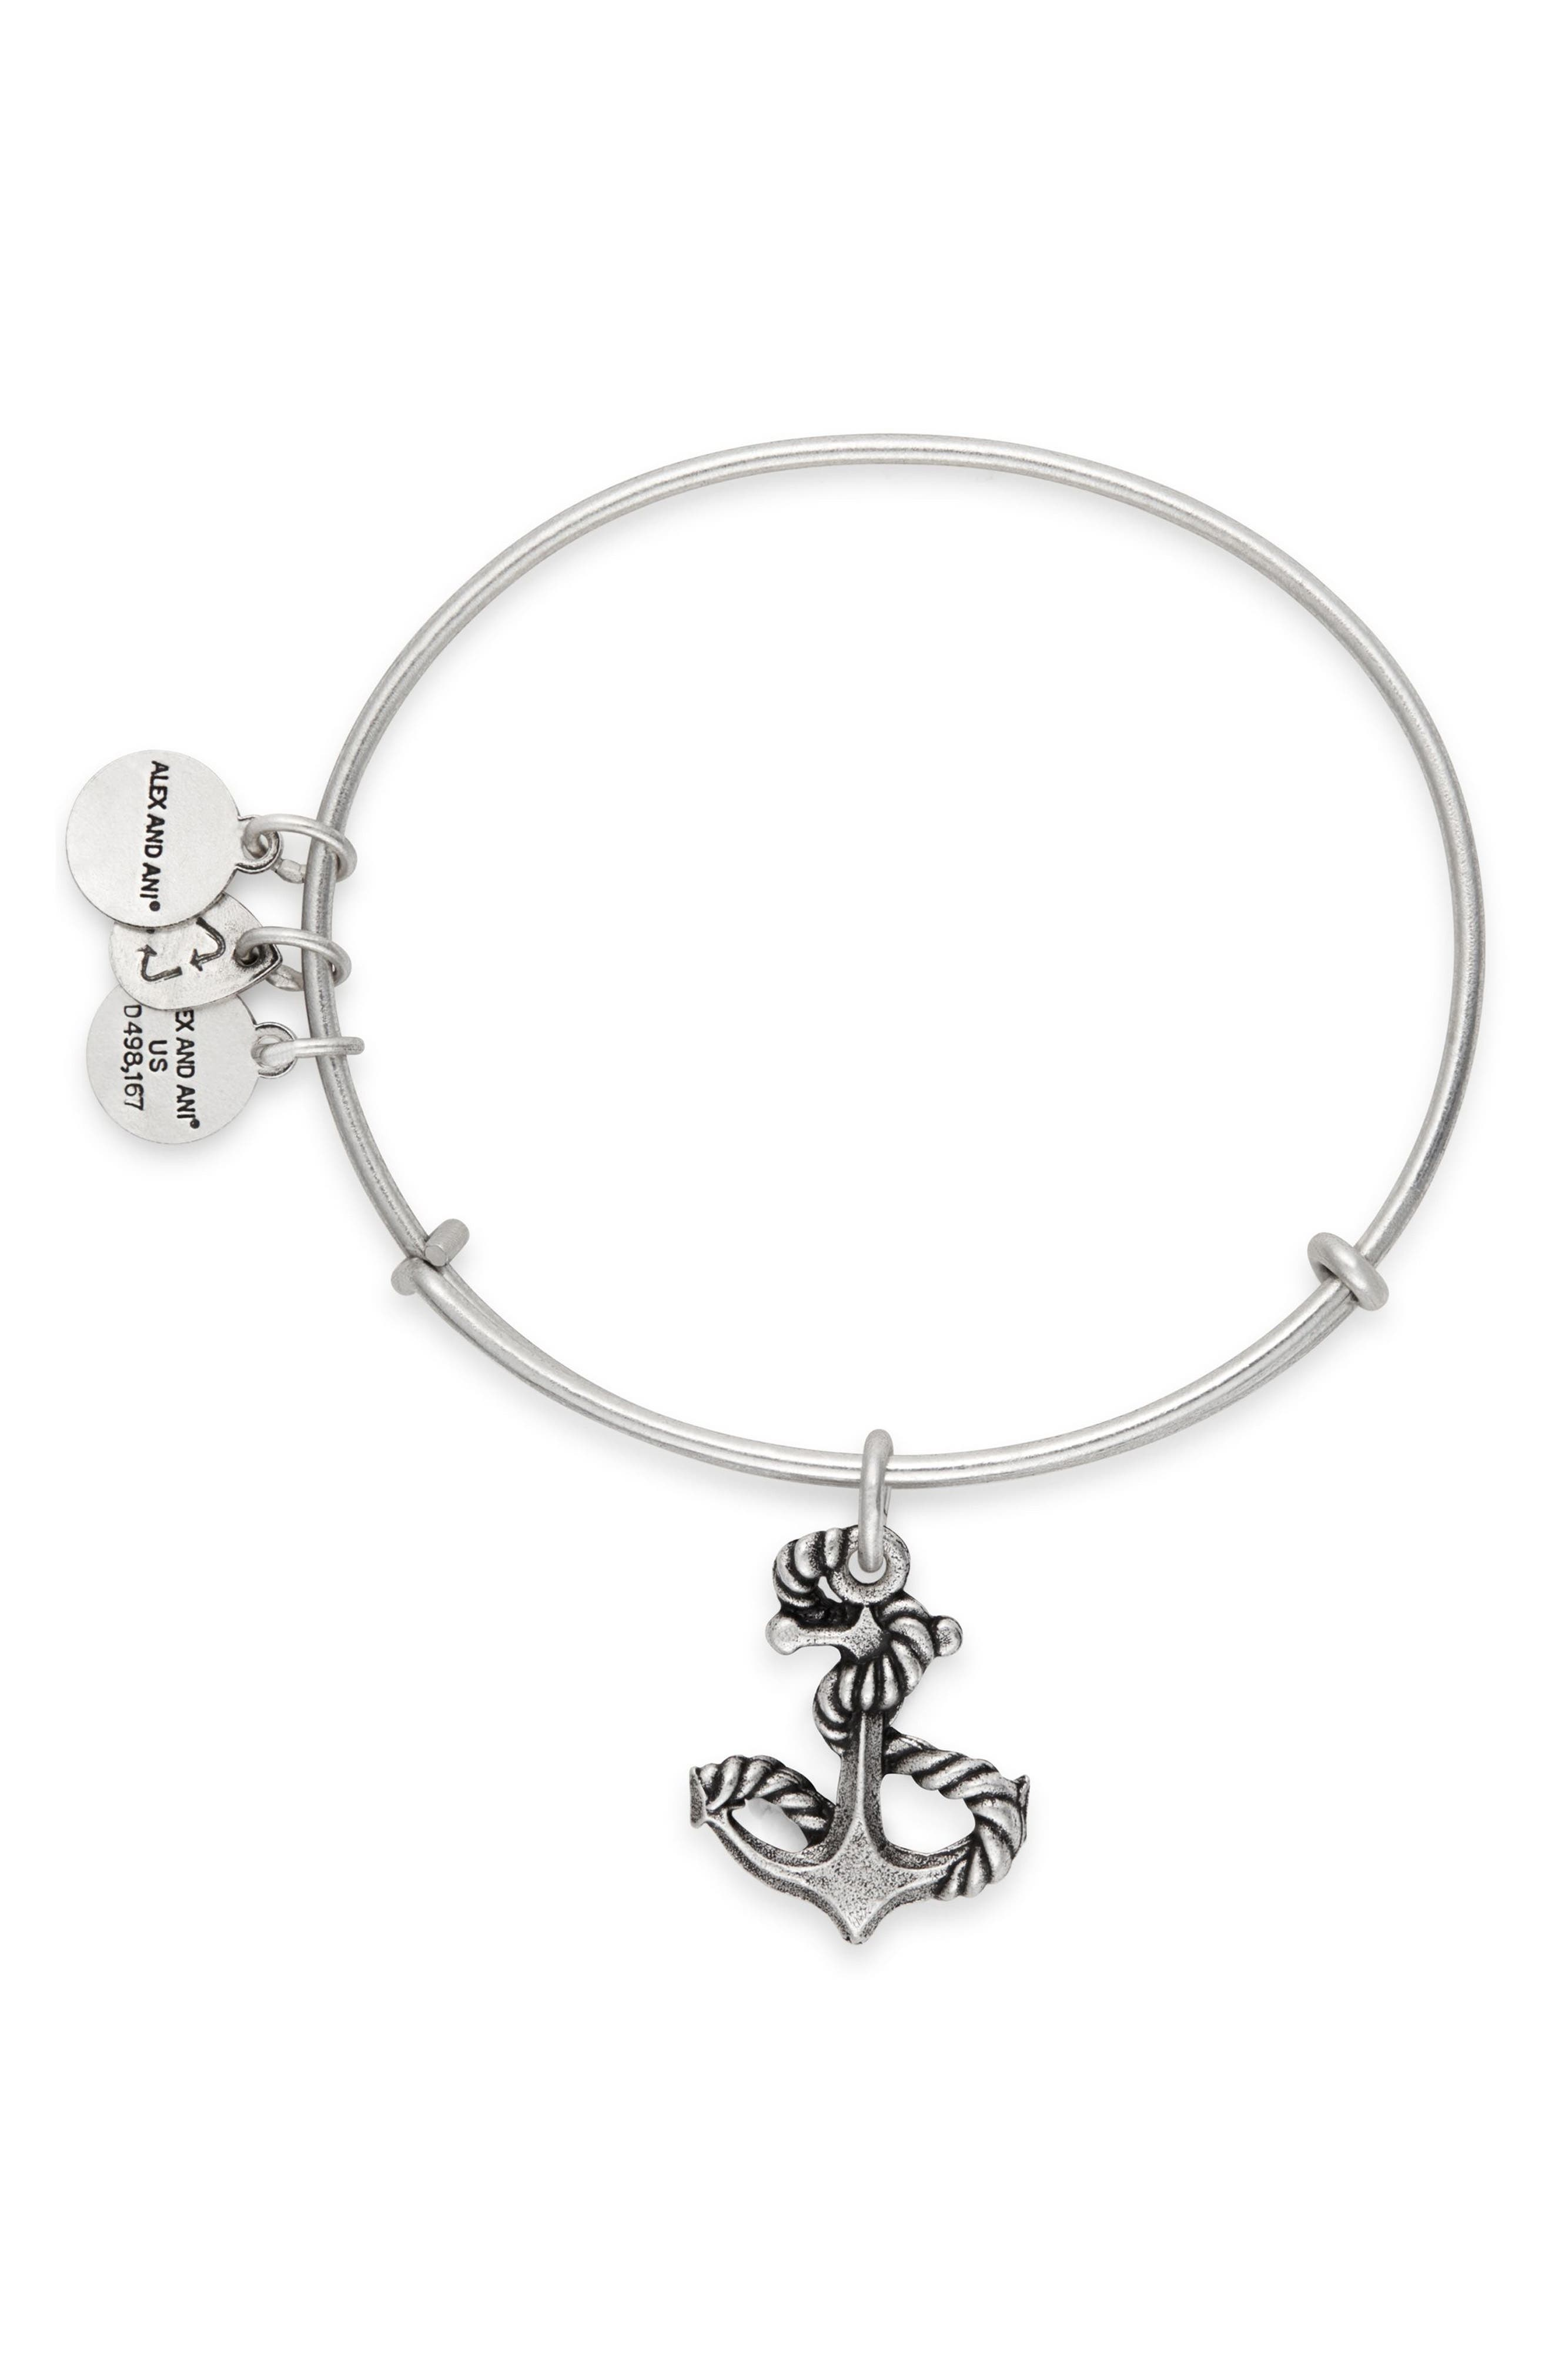 Anchor Adjustable Wire Bangle,                             Alternate thumbnail 2, color,                             Silver